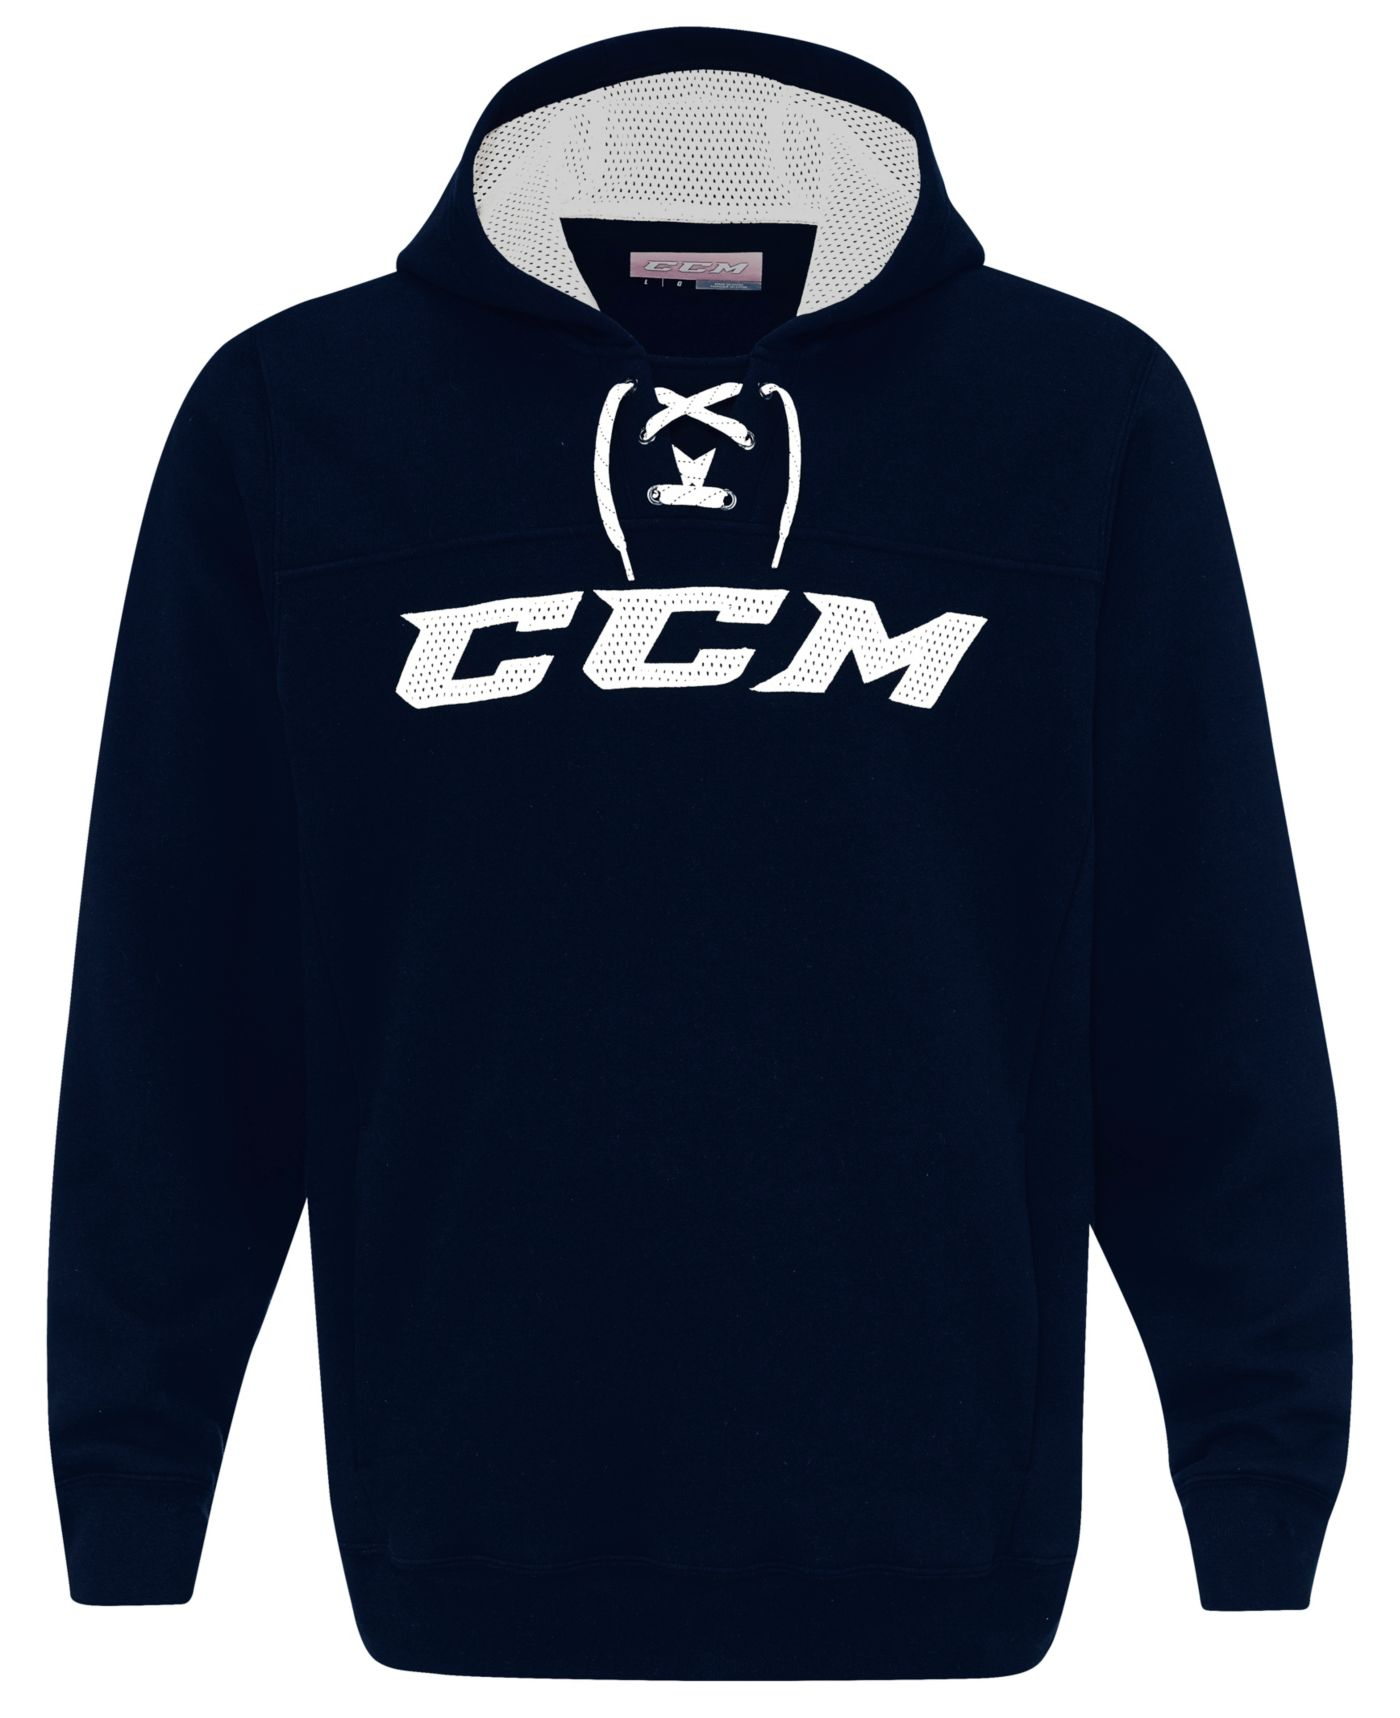 CCM Youth True to Hockey Lace Neck Hoodie